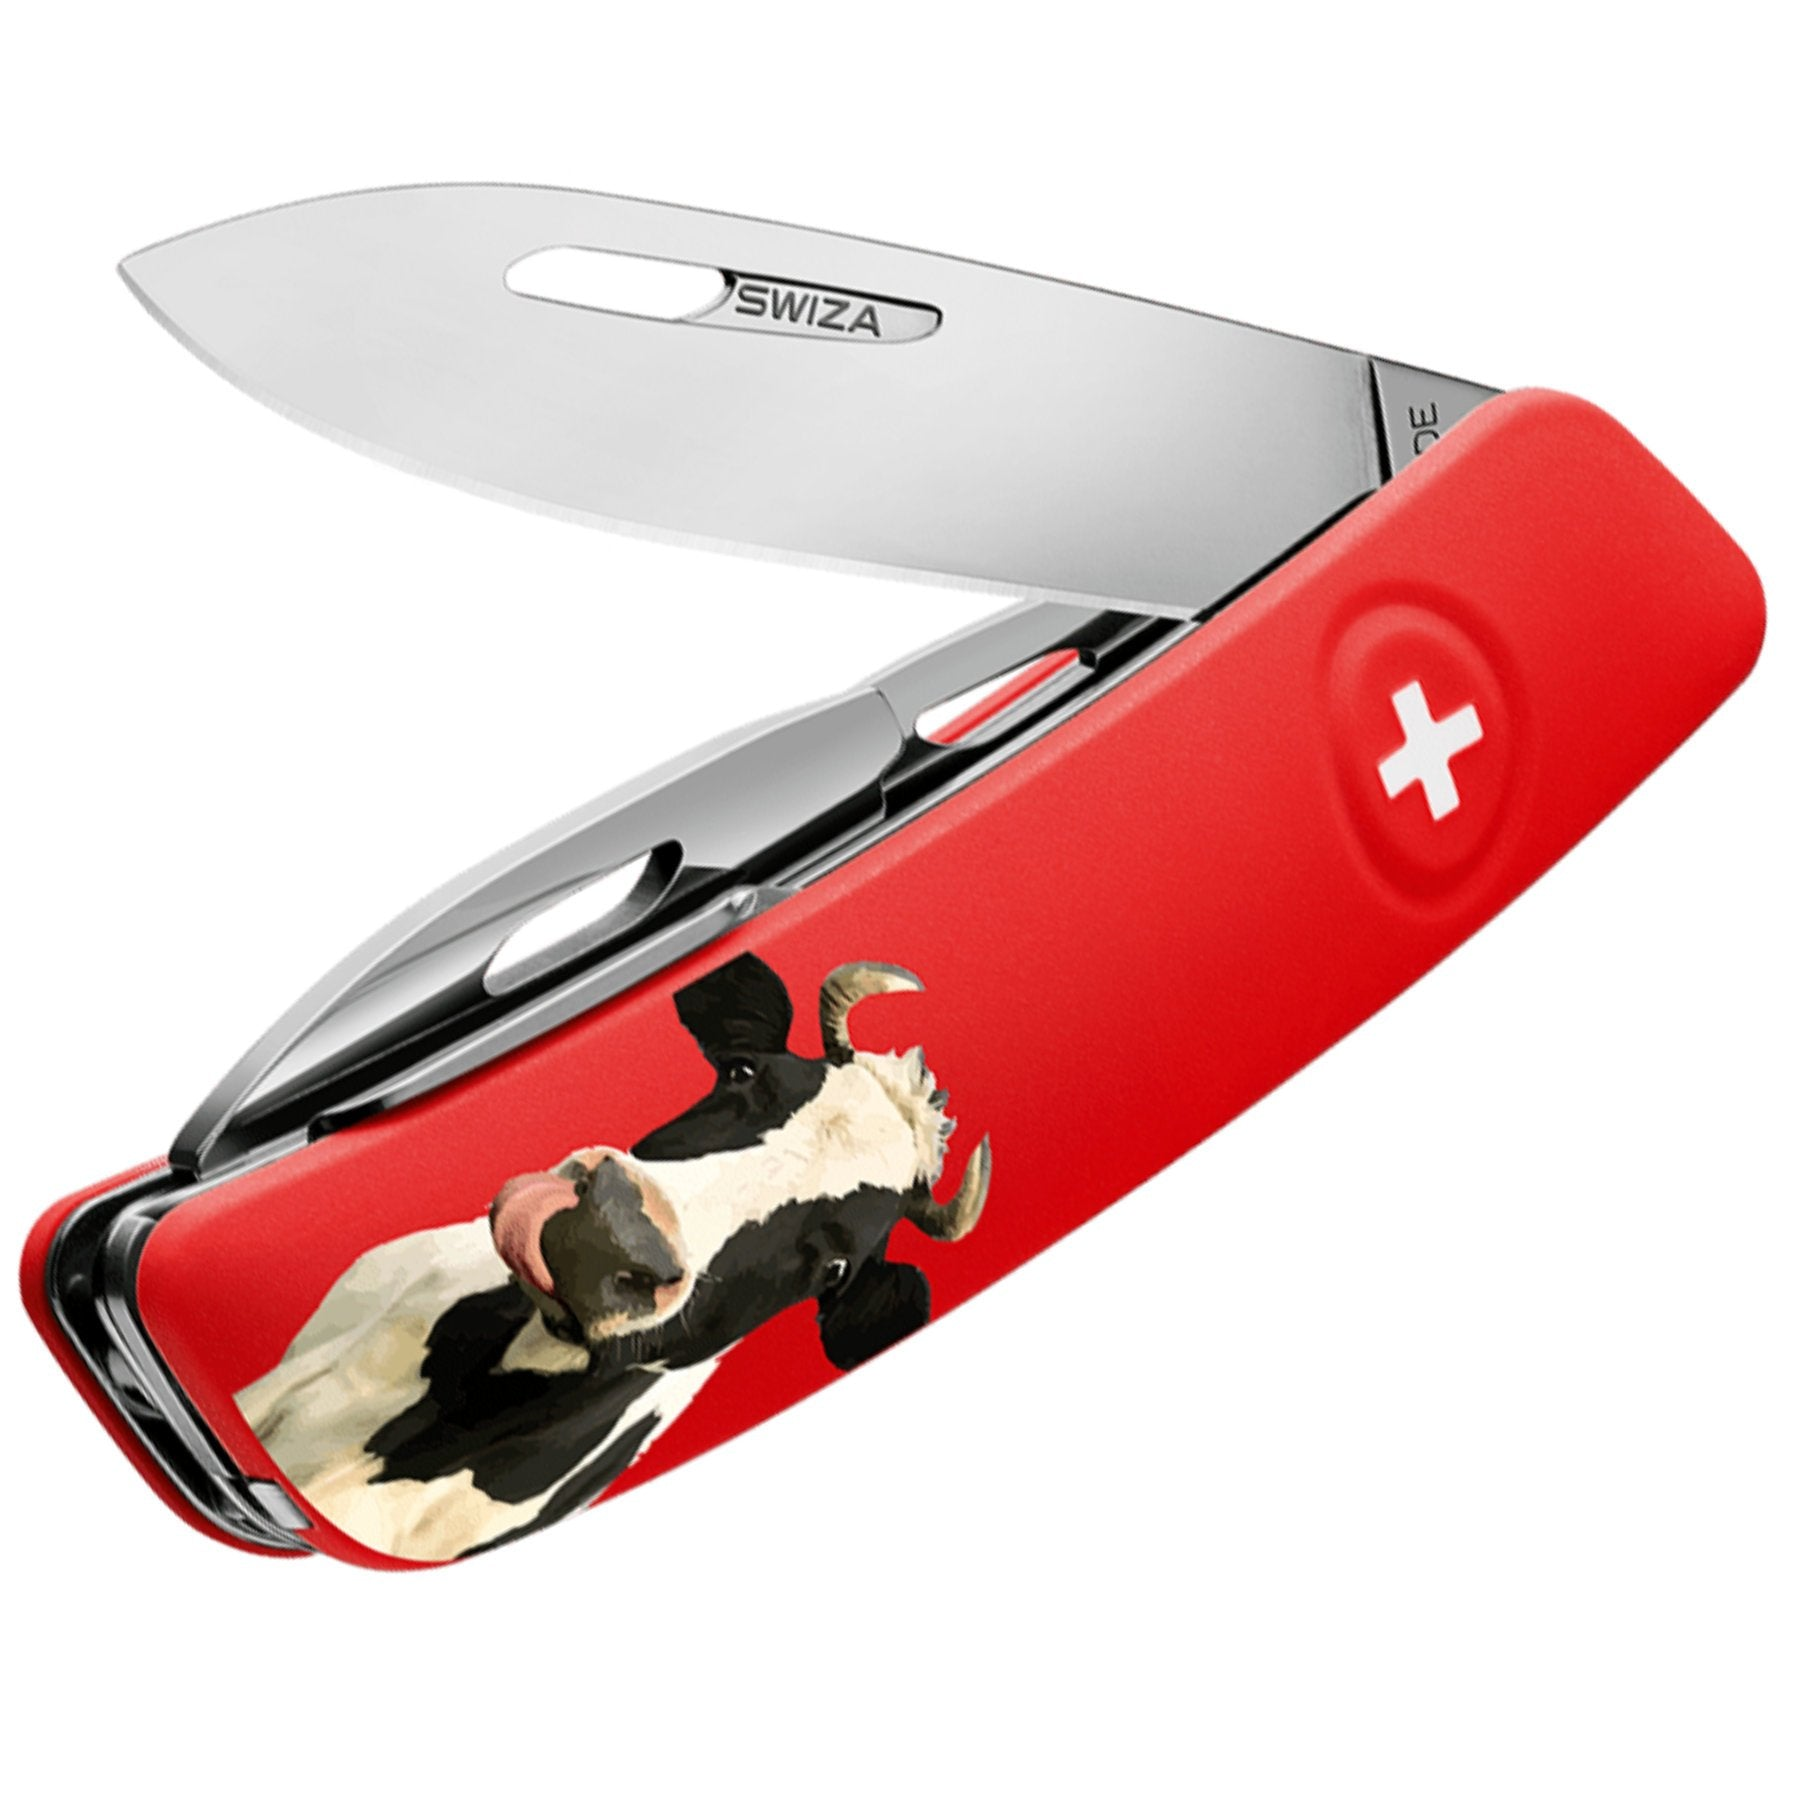 New Arrivals in Multi-tools at Swiss Knife Shop